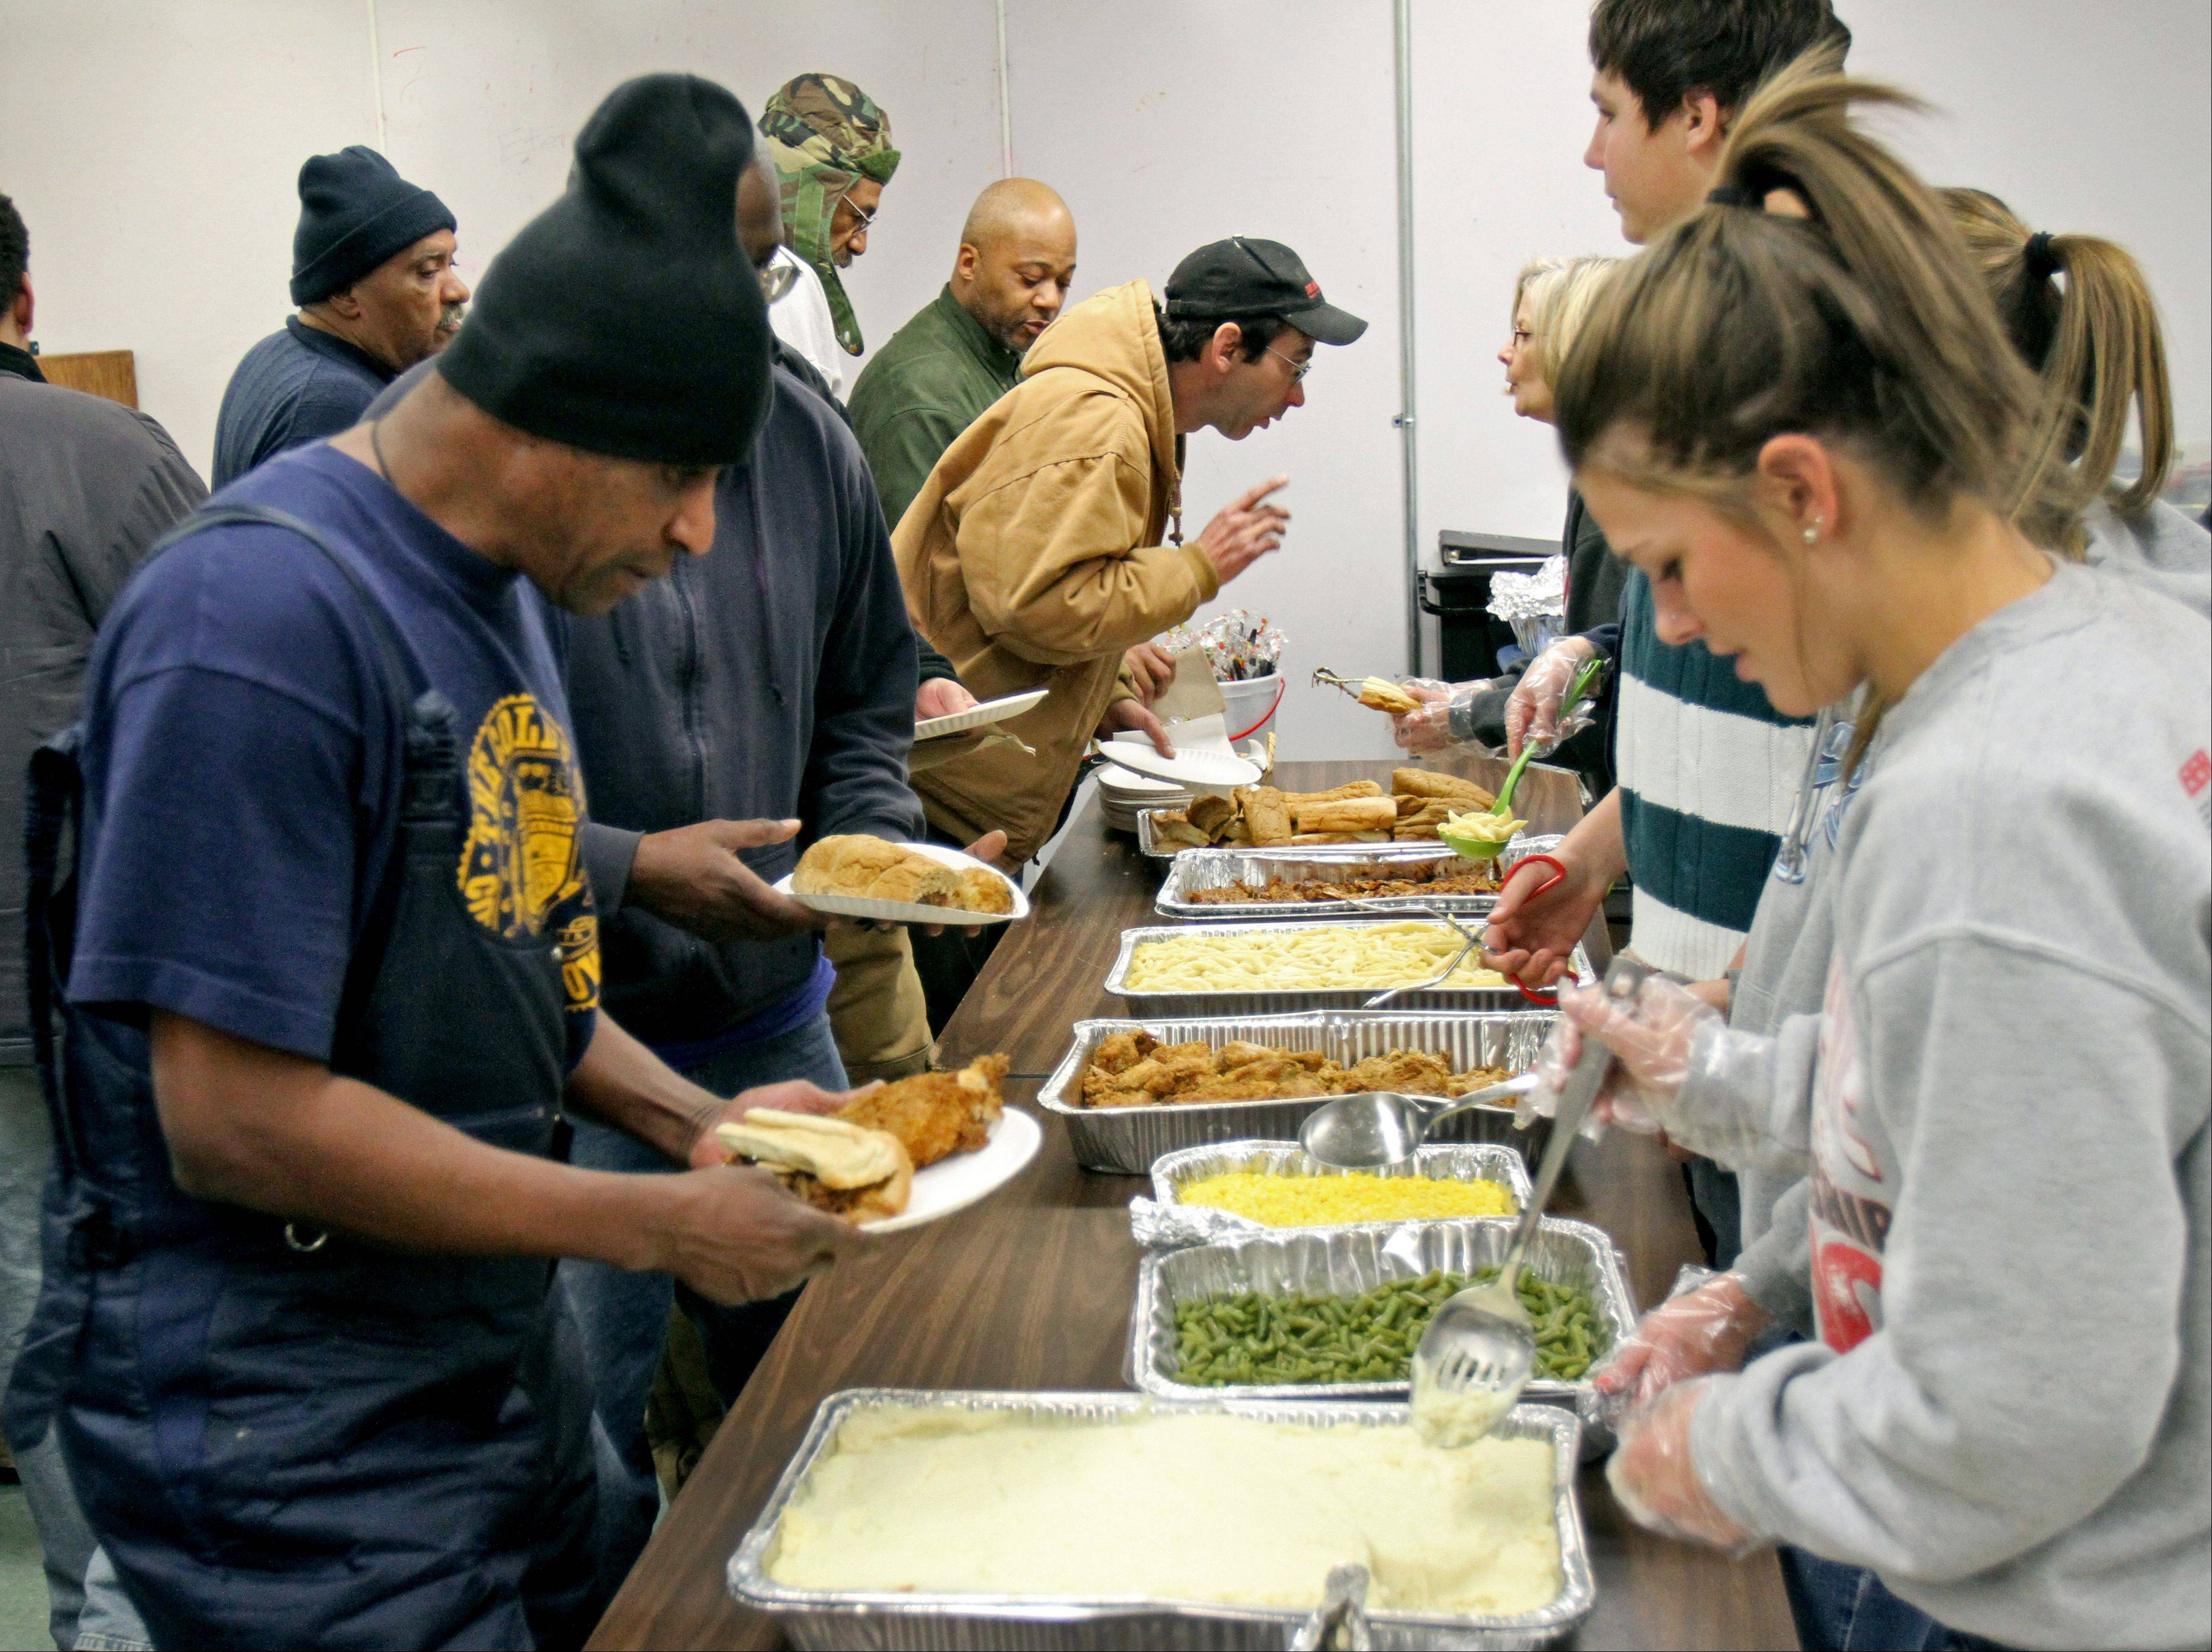 Steve Lundy/DAILY HERALDPADS guests line up for a meal as volunteers dish out some food at the Libertyville PADS shelter sponsored by St. Joseph Catholic Church in this file photo from 2010. More poor people live in the nation's suburbs than in urban cities because of affordable housing, service-sector jobs and the increased use of housing vouchers, according to a study released Monday.